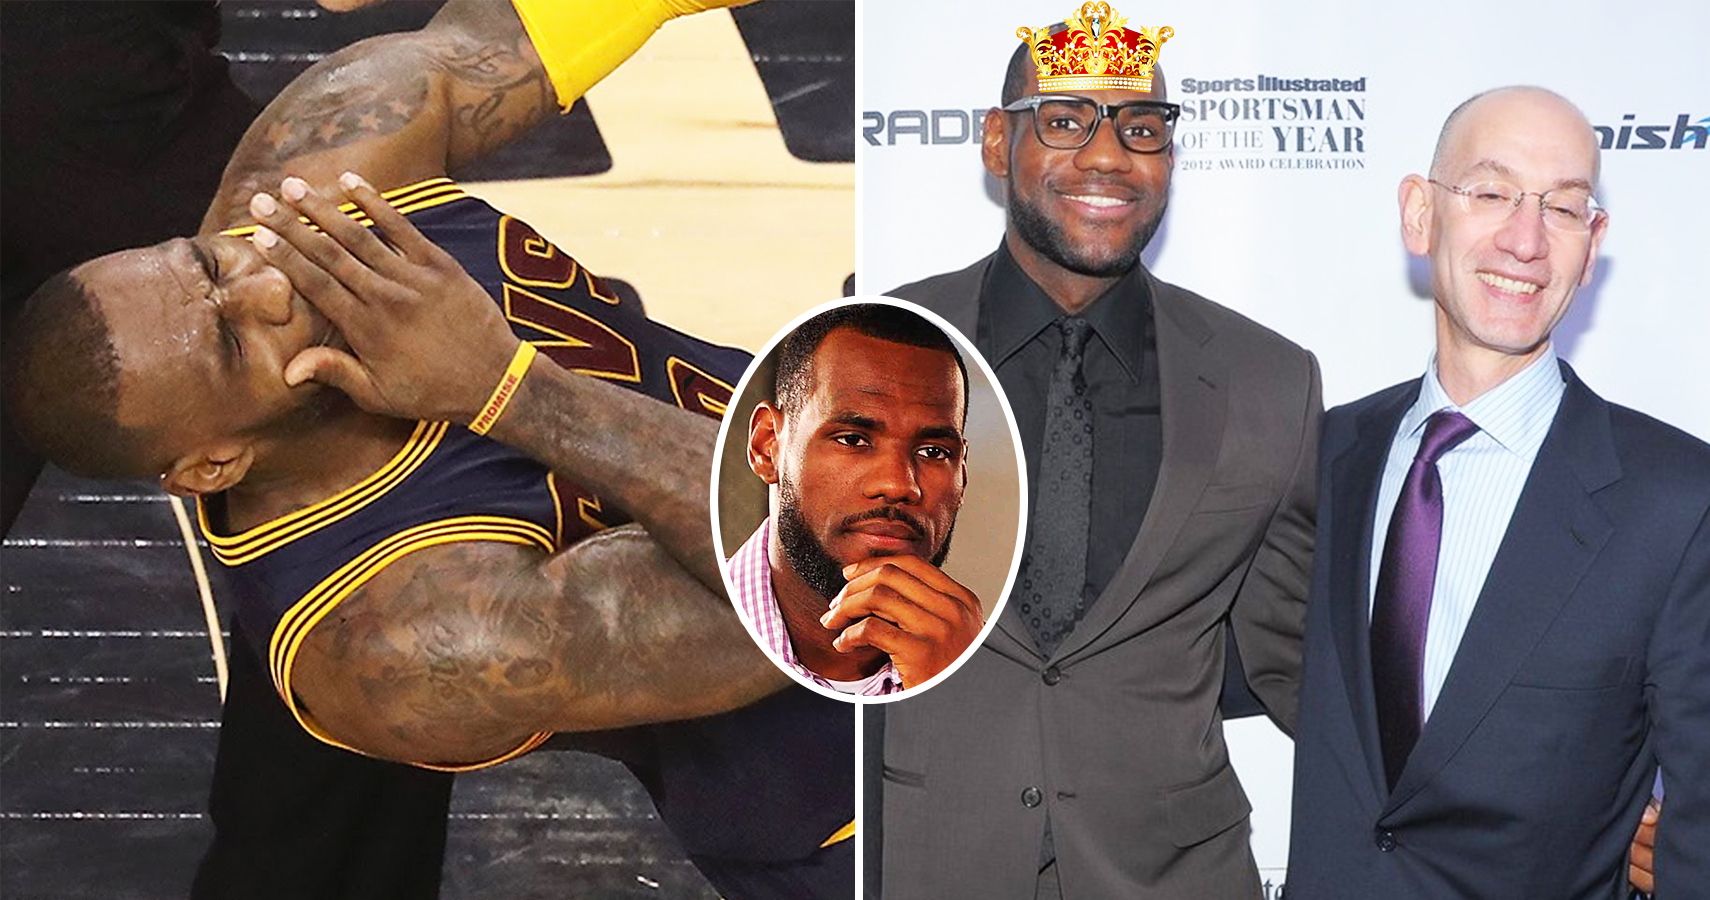 Stong quote by lebron james on the bond with his teammates - Stong Quote By Lebron James On The Bond With His Teammates 84